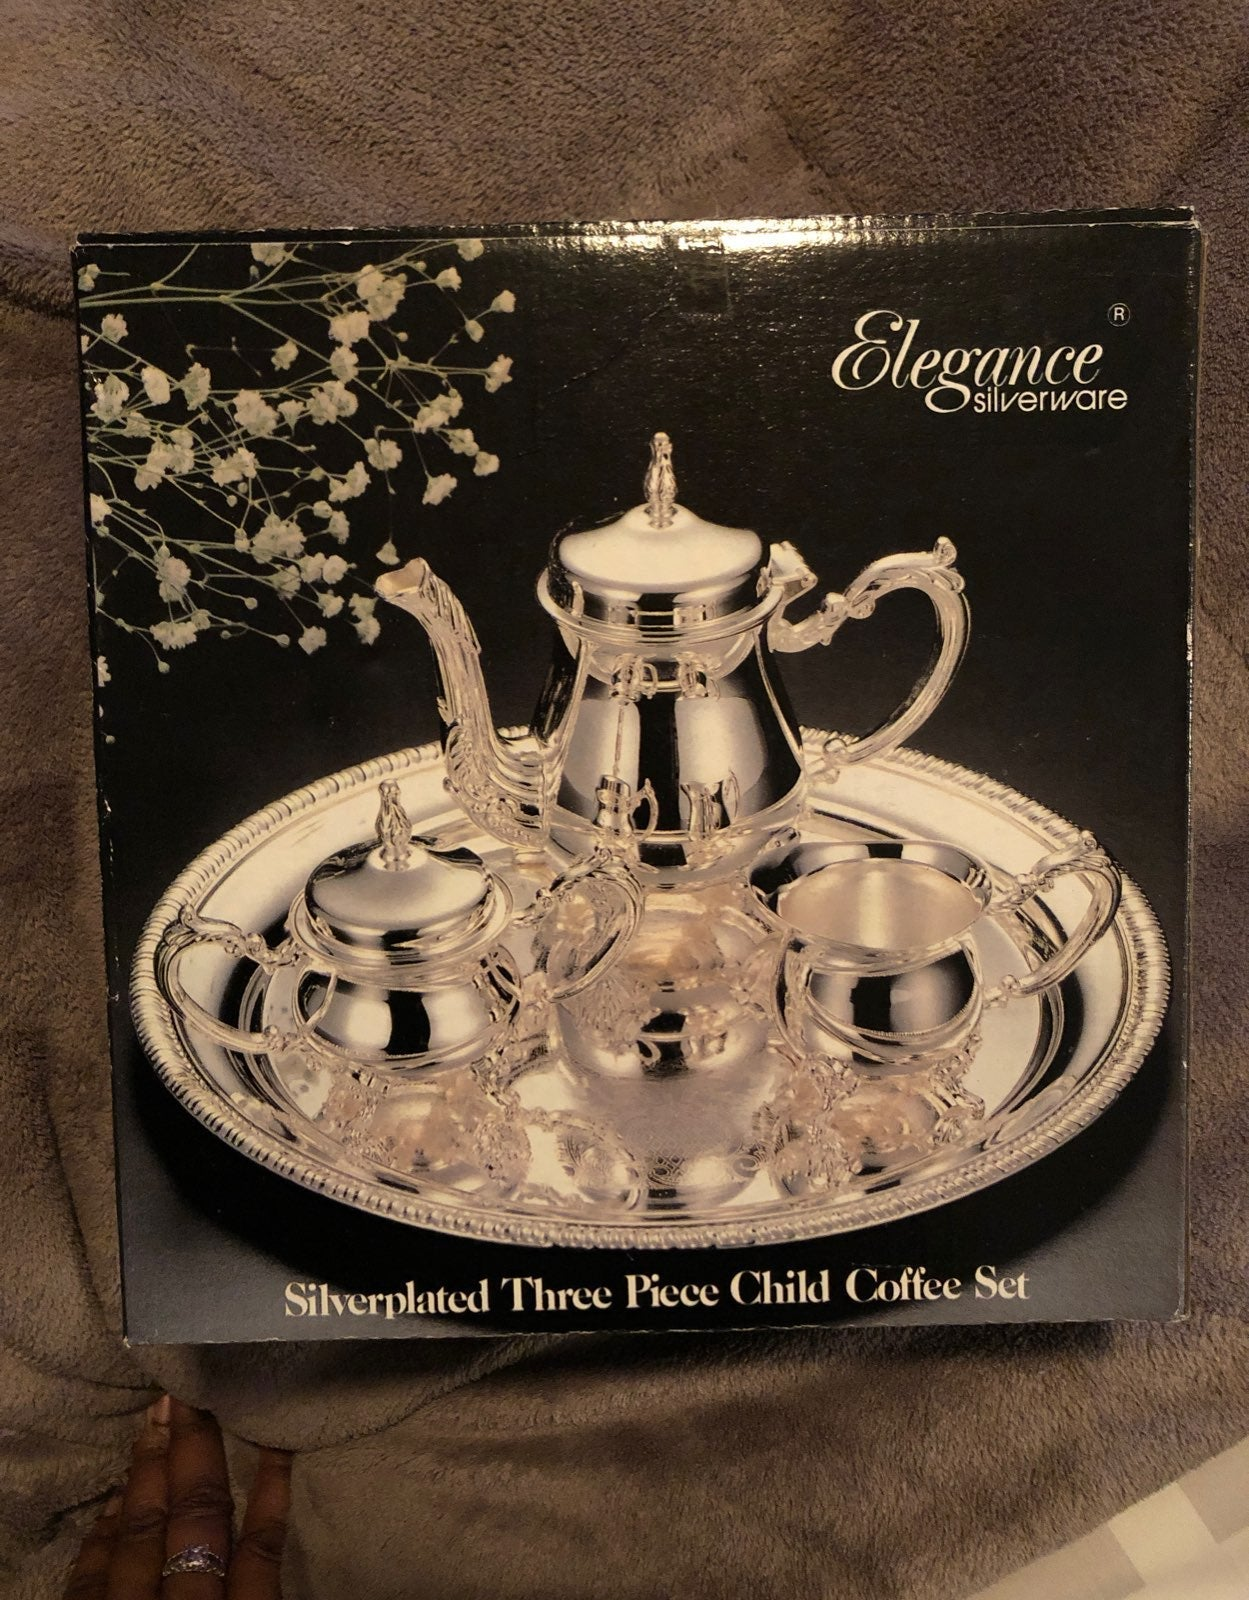 Petite Childs Size Silver Plated Coffee